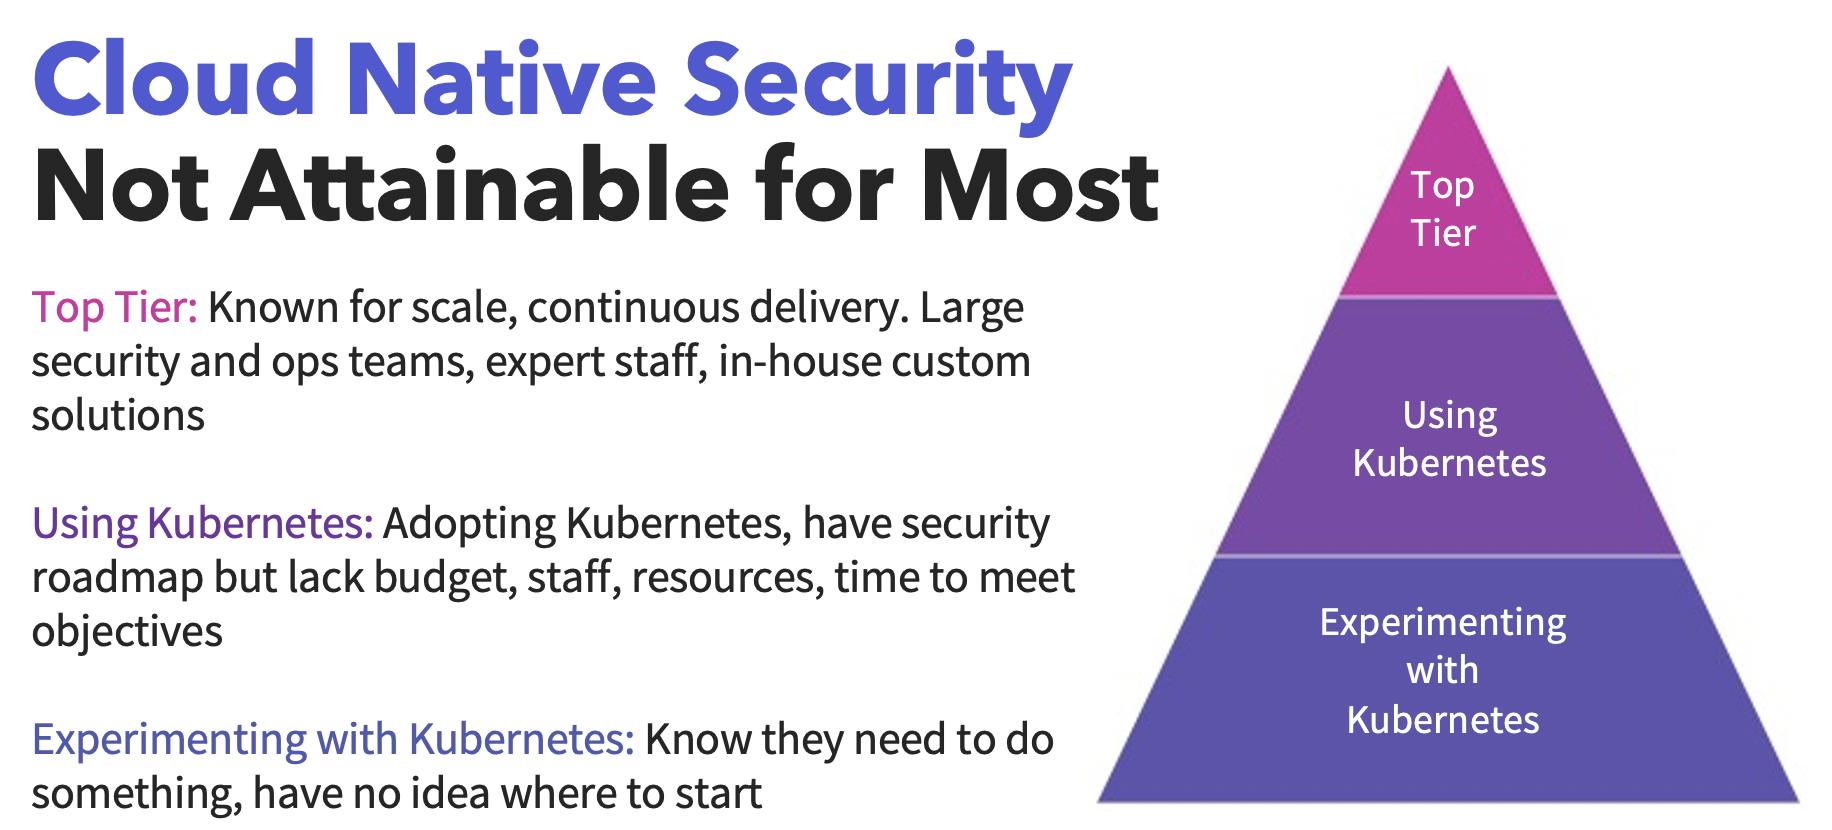 cloud native security not attainable